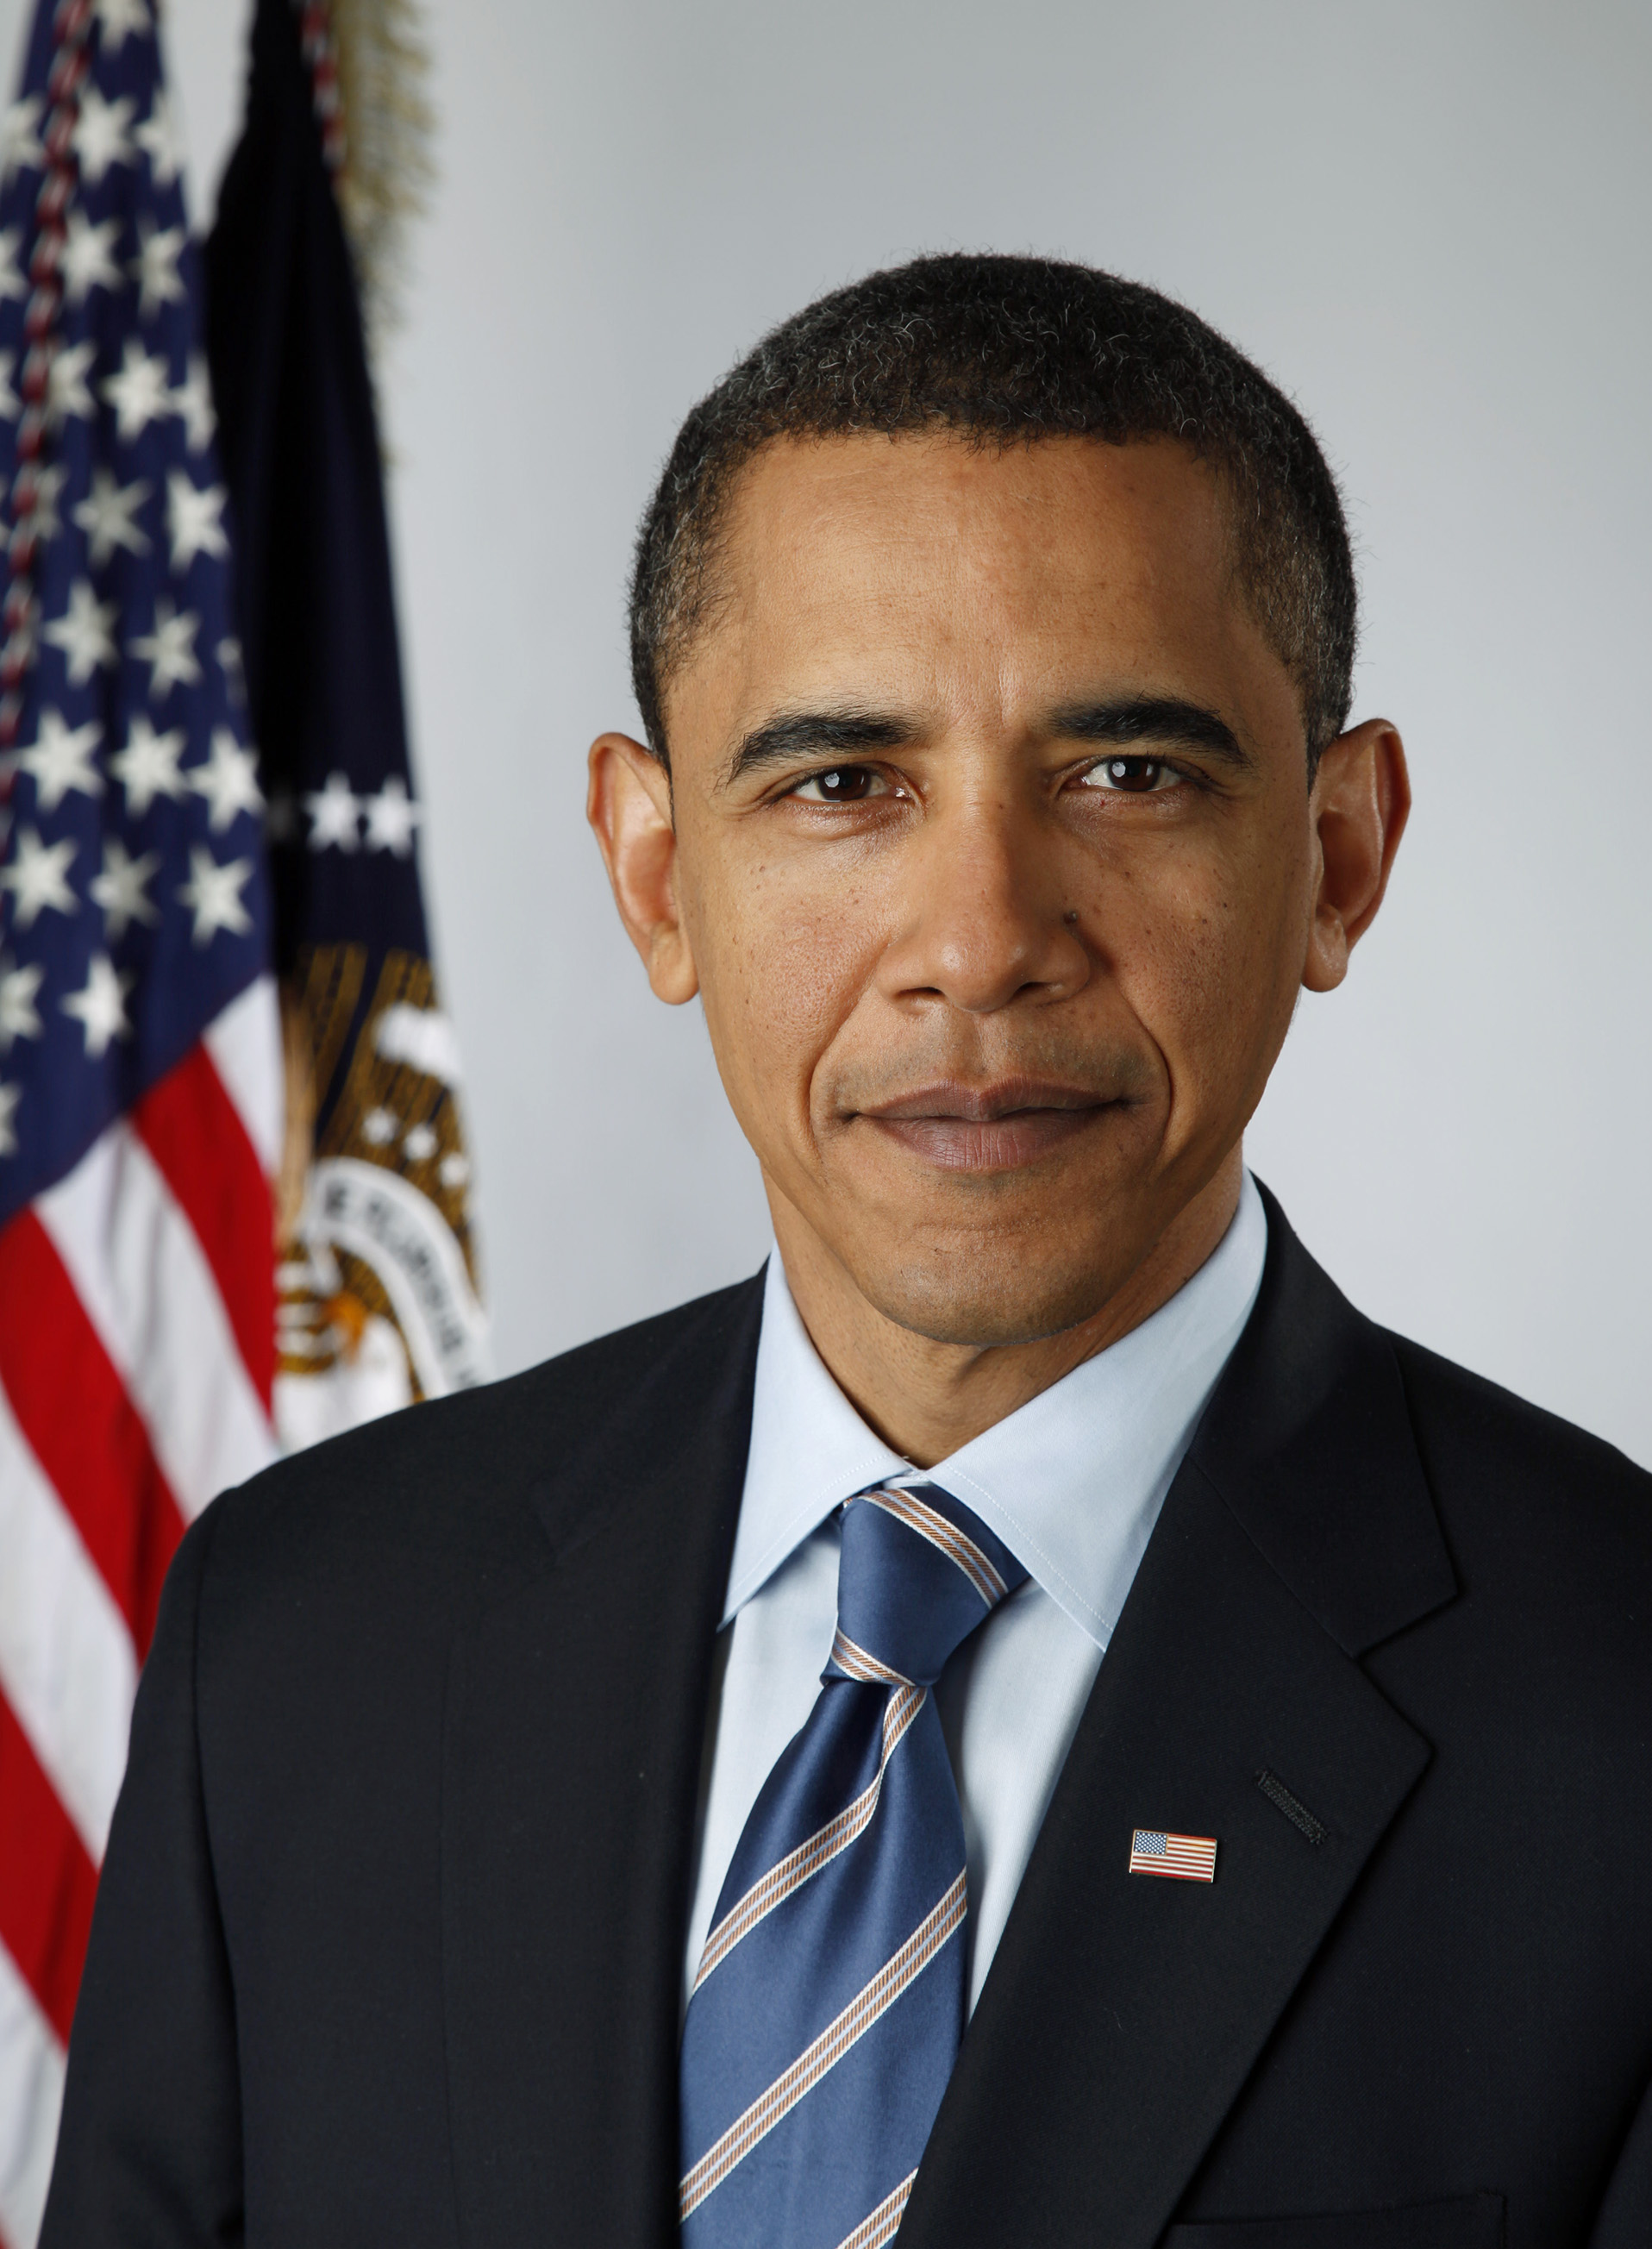 Obama Official Portrait SC